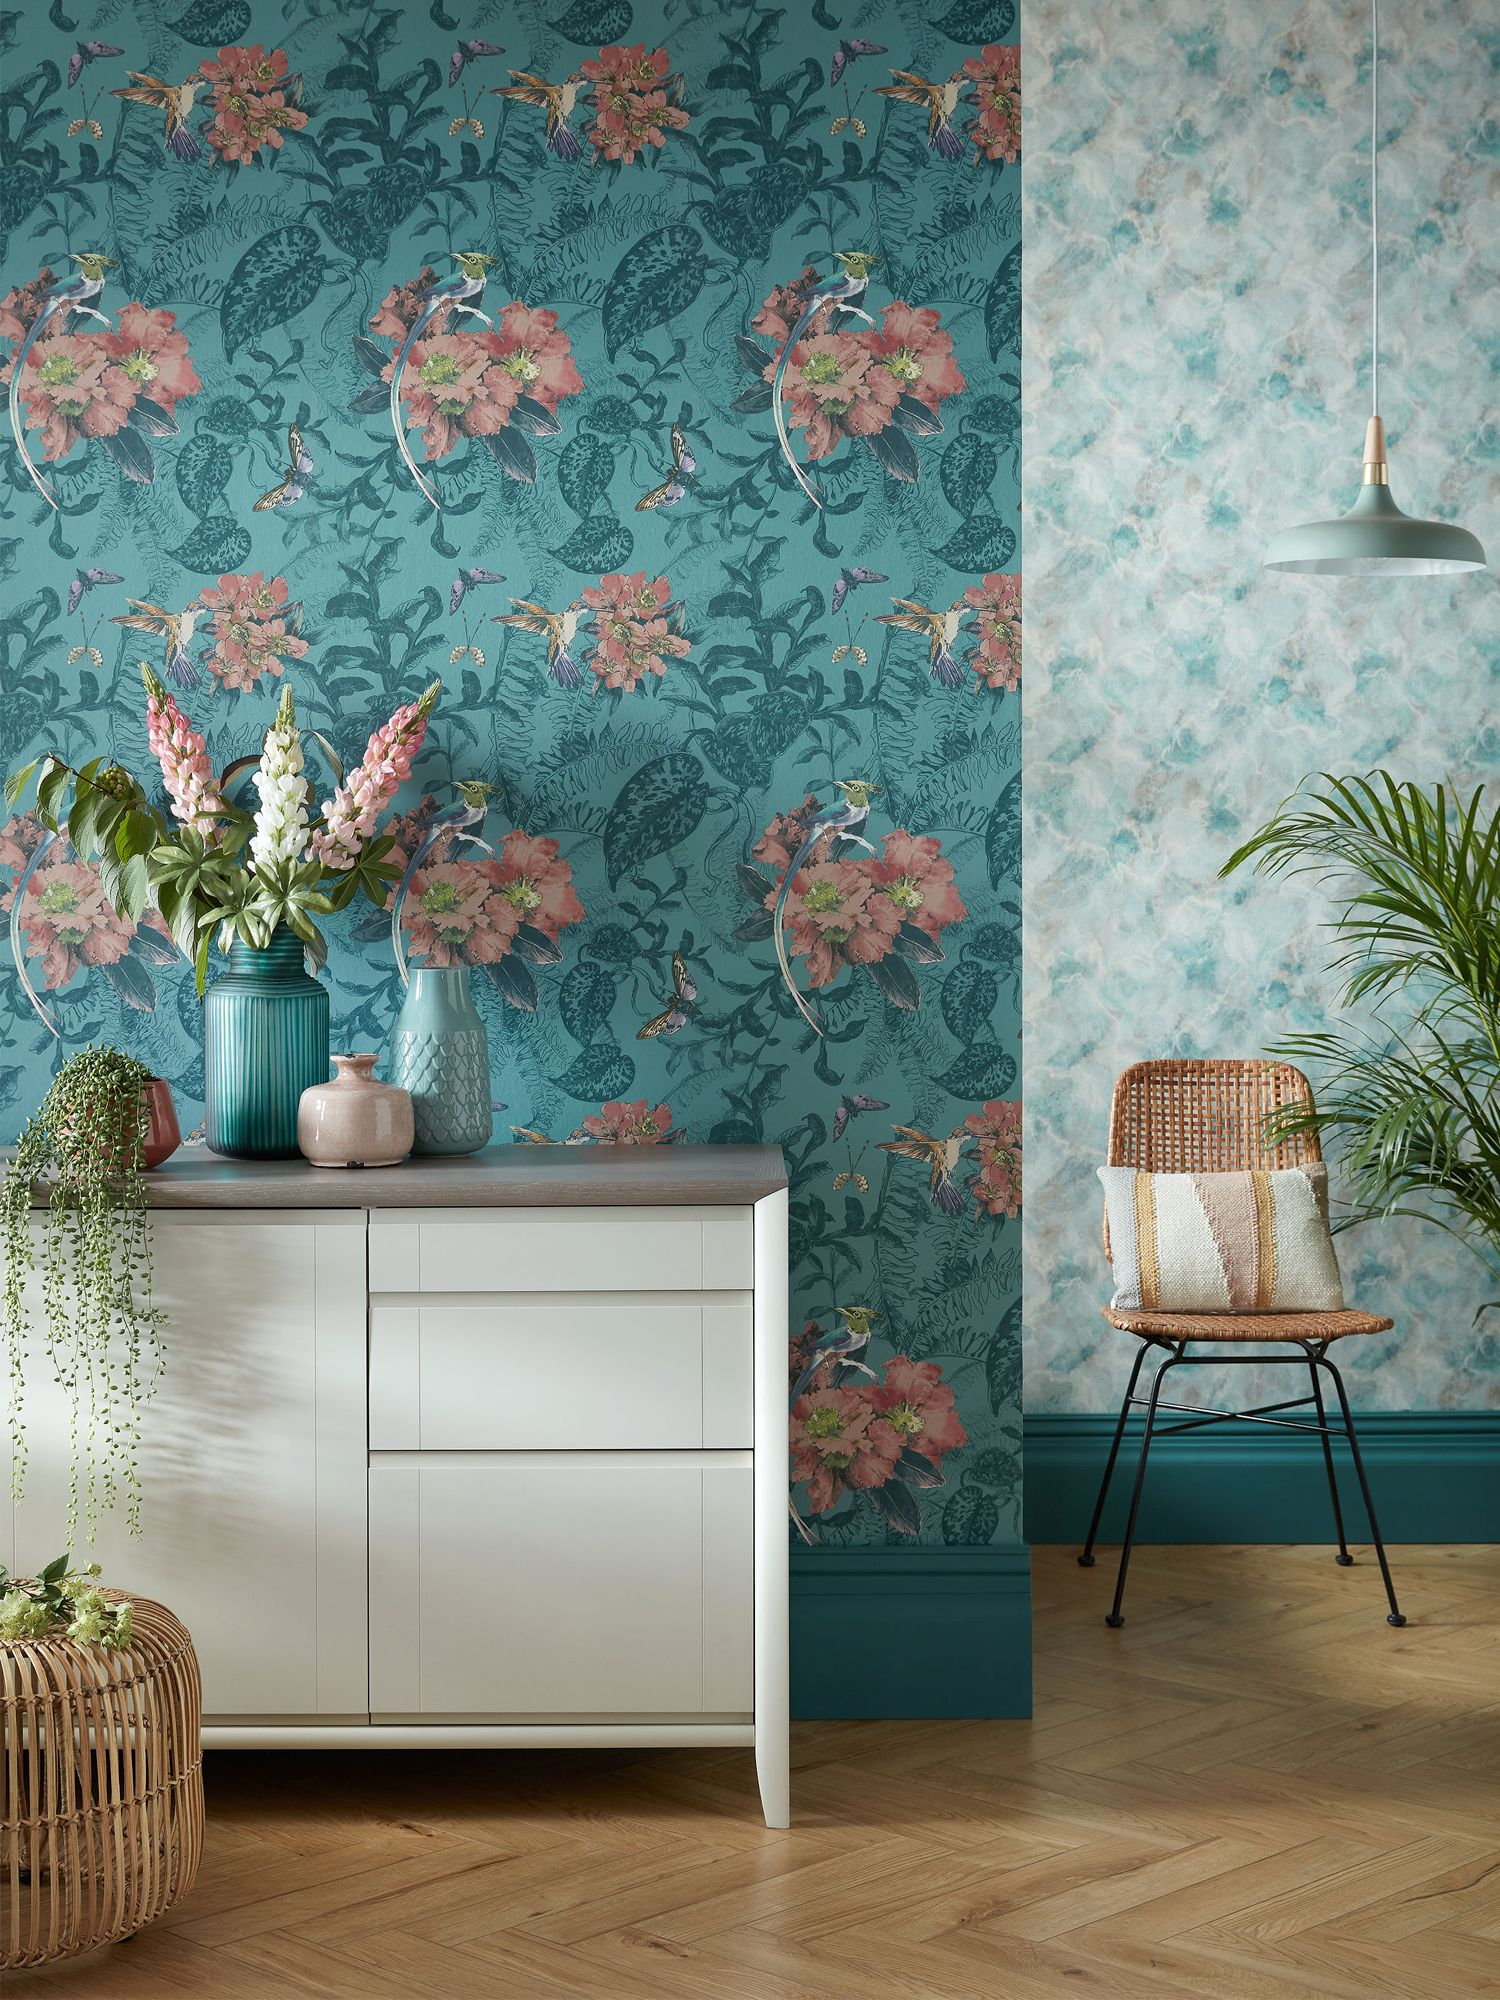 1838 Wallcoverings Hedgerow Mineral wallpaper, from Altfield Interiors